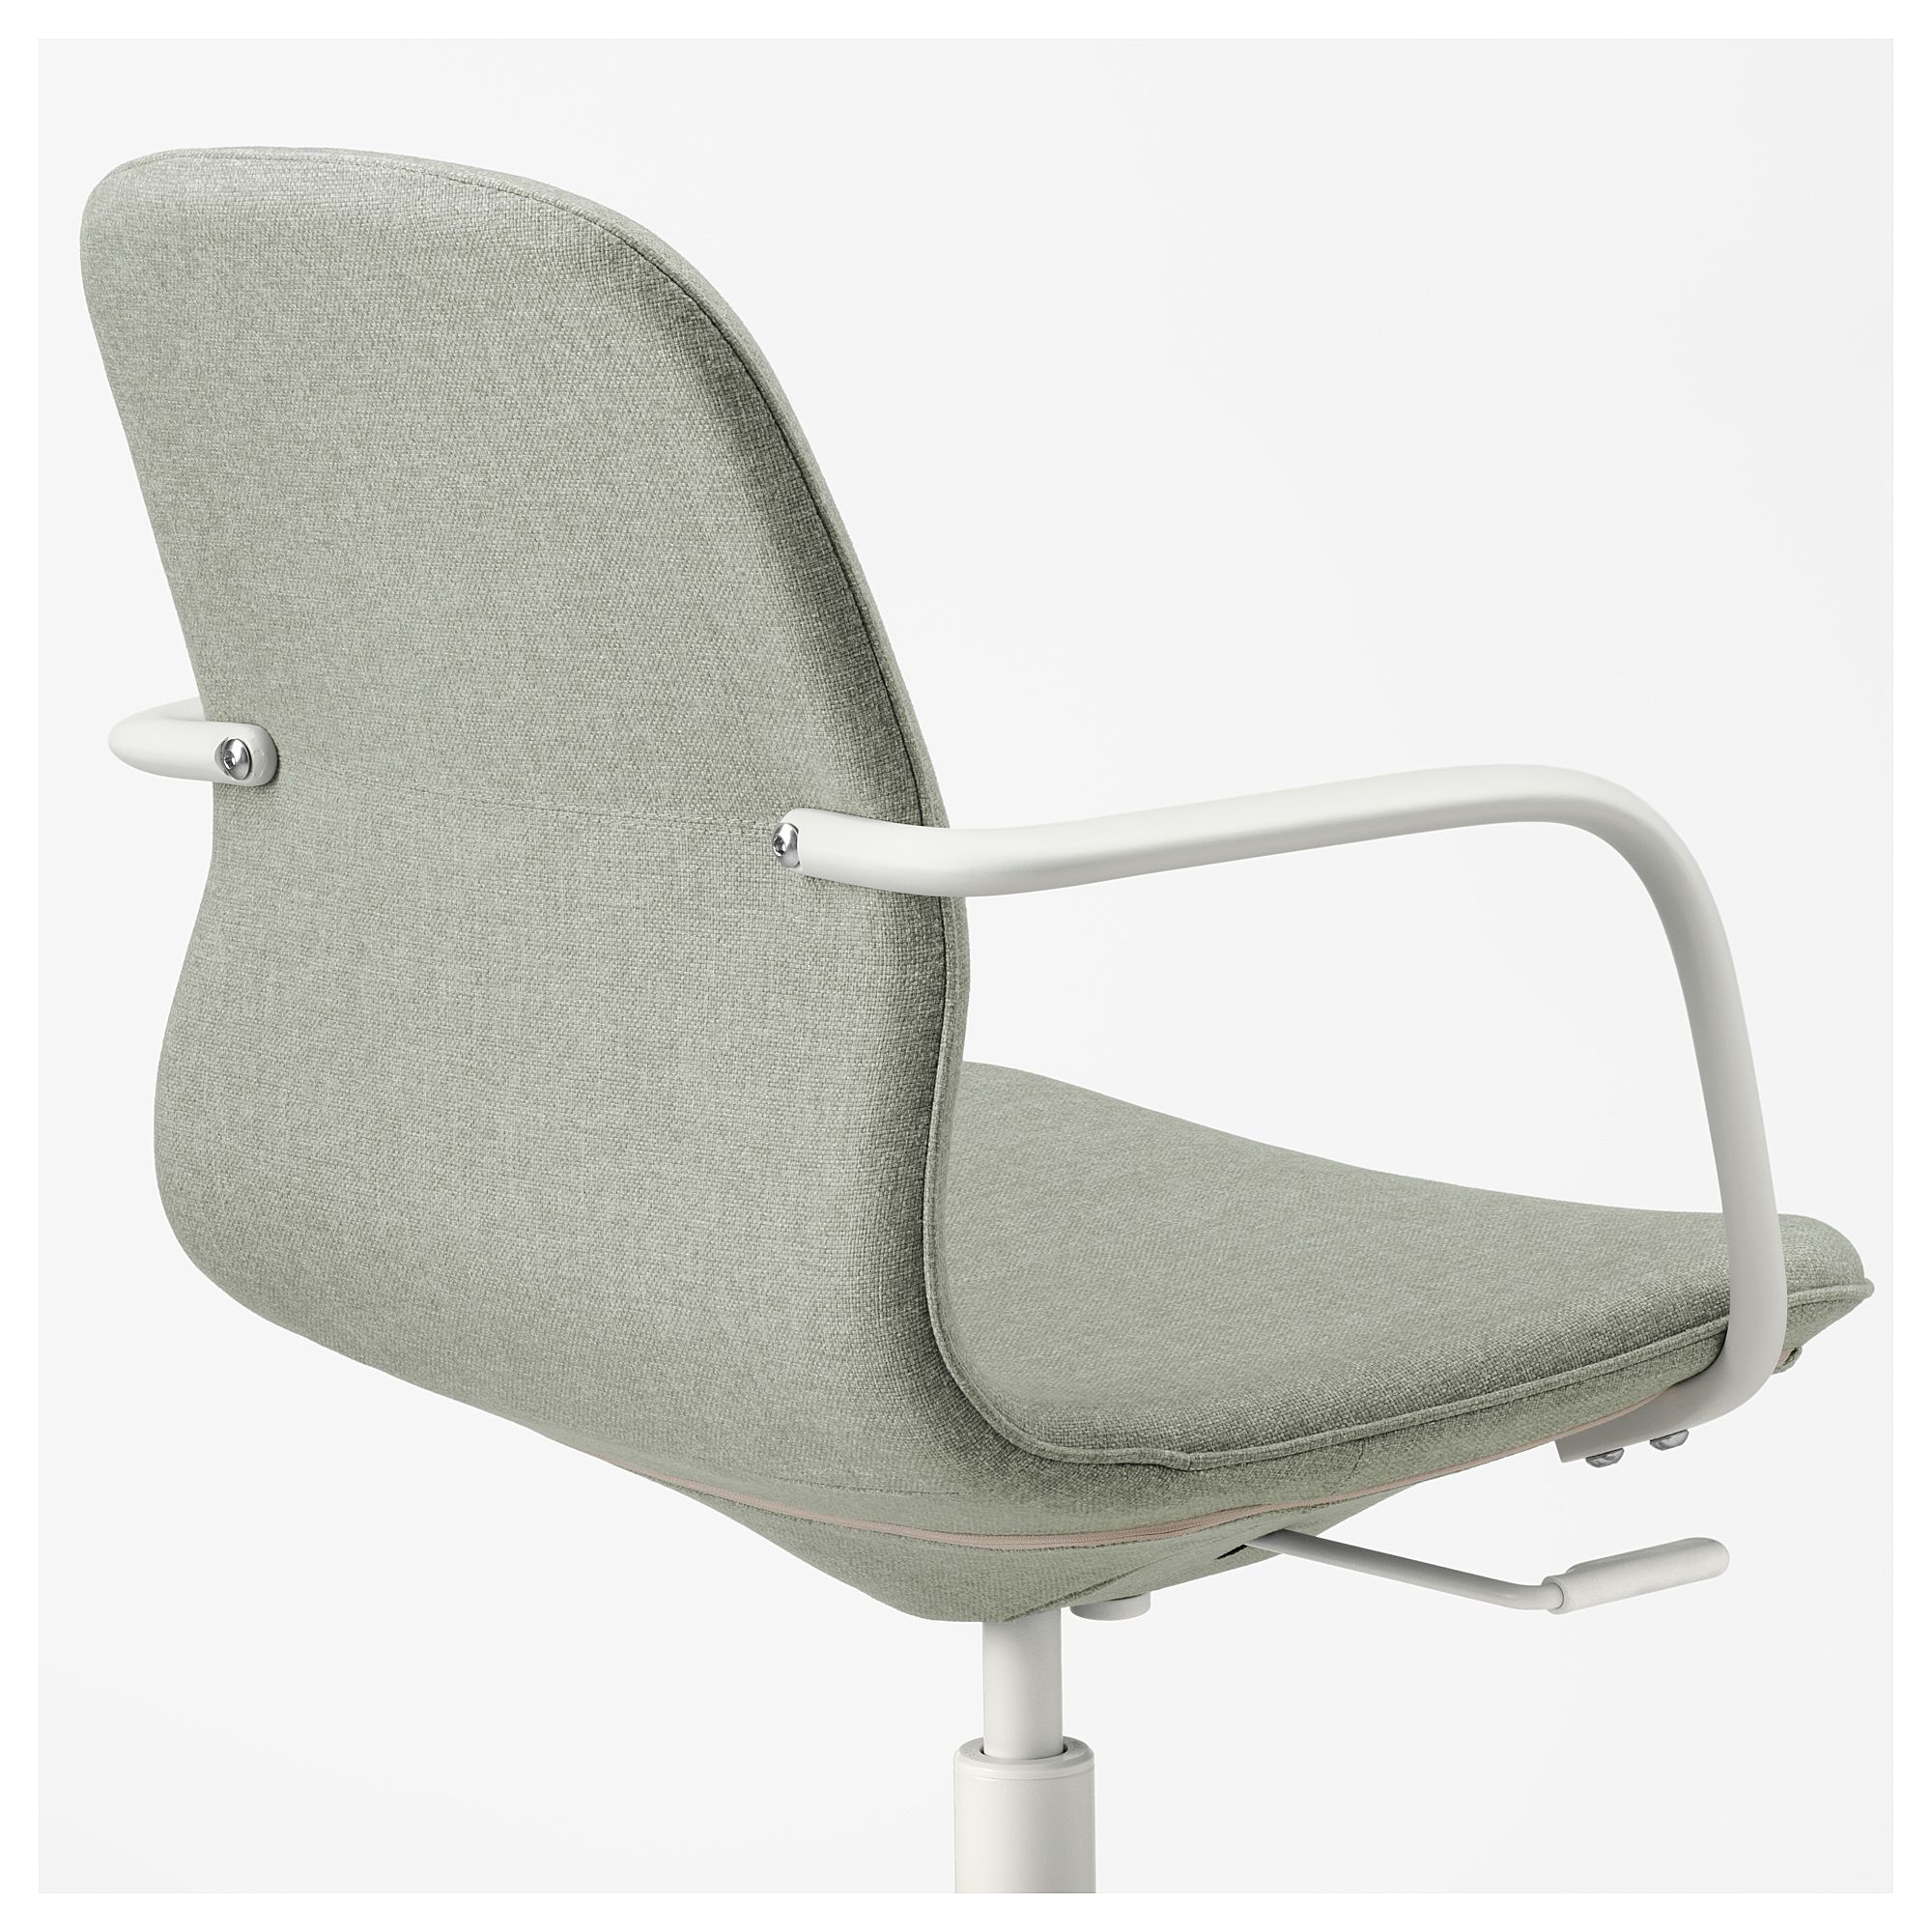 Us Furniture And Home Furnishings Ikea Chair Upholstered Chairs